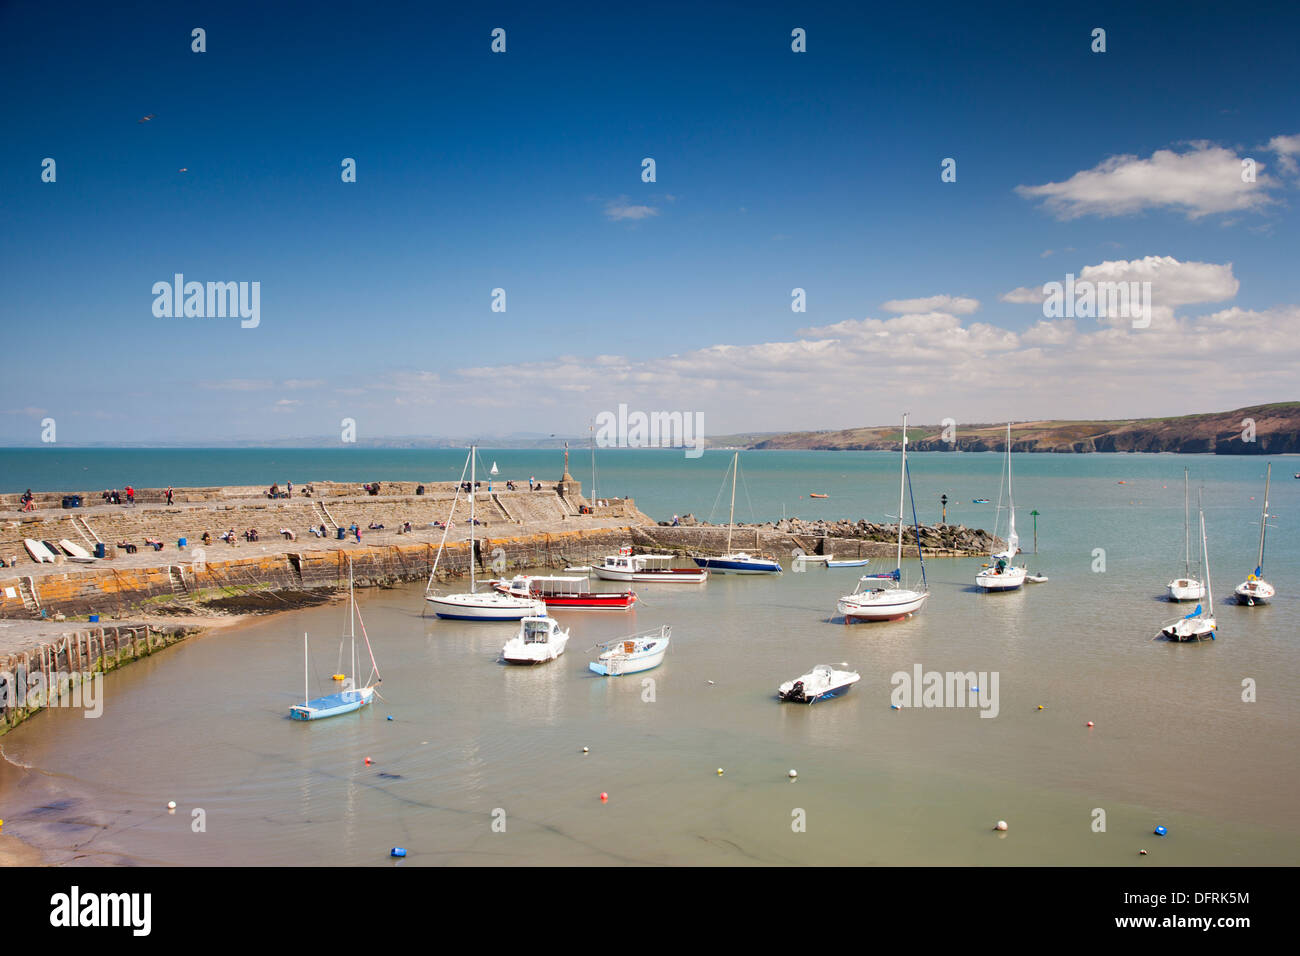 View of the picturesque harbour at Cei Newydd New Quay Wales - Stock Image